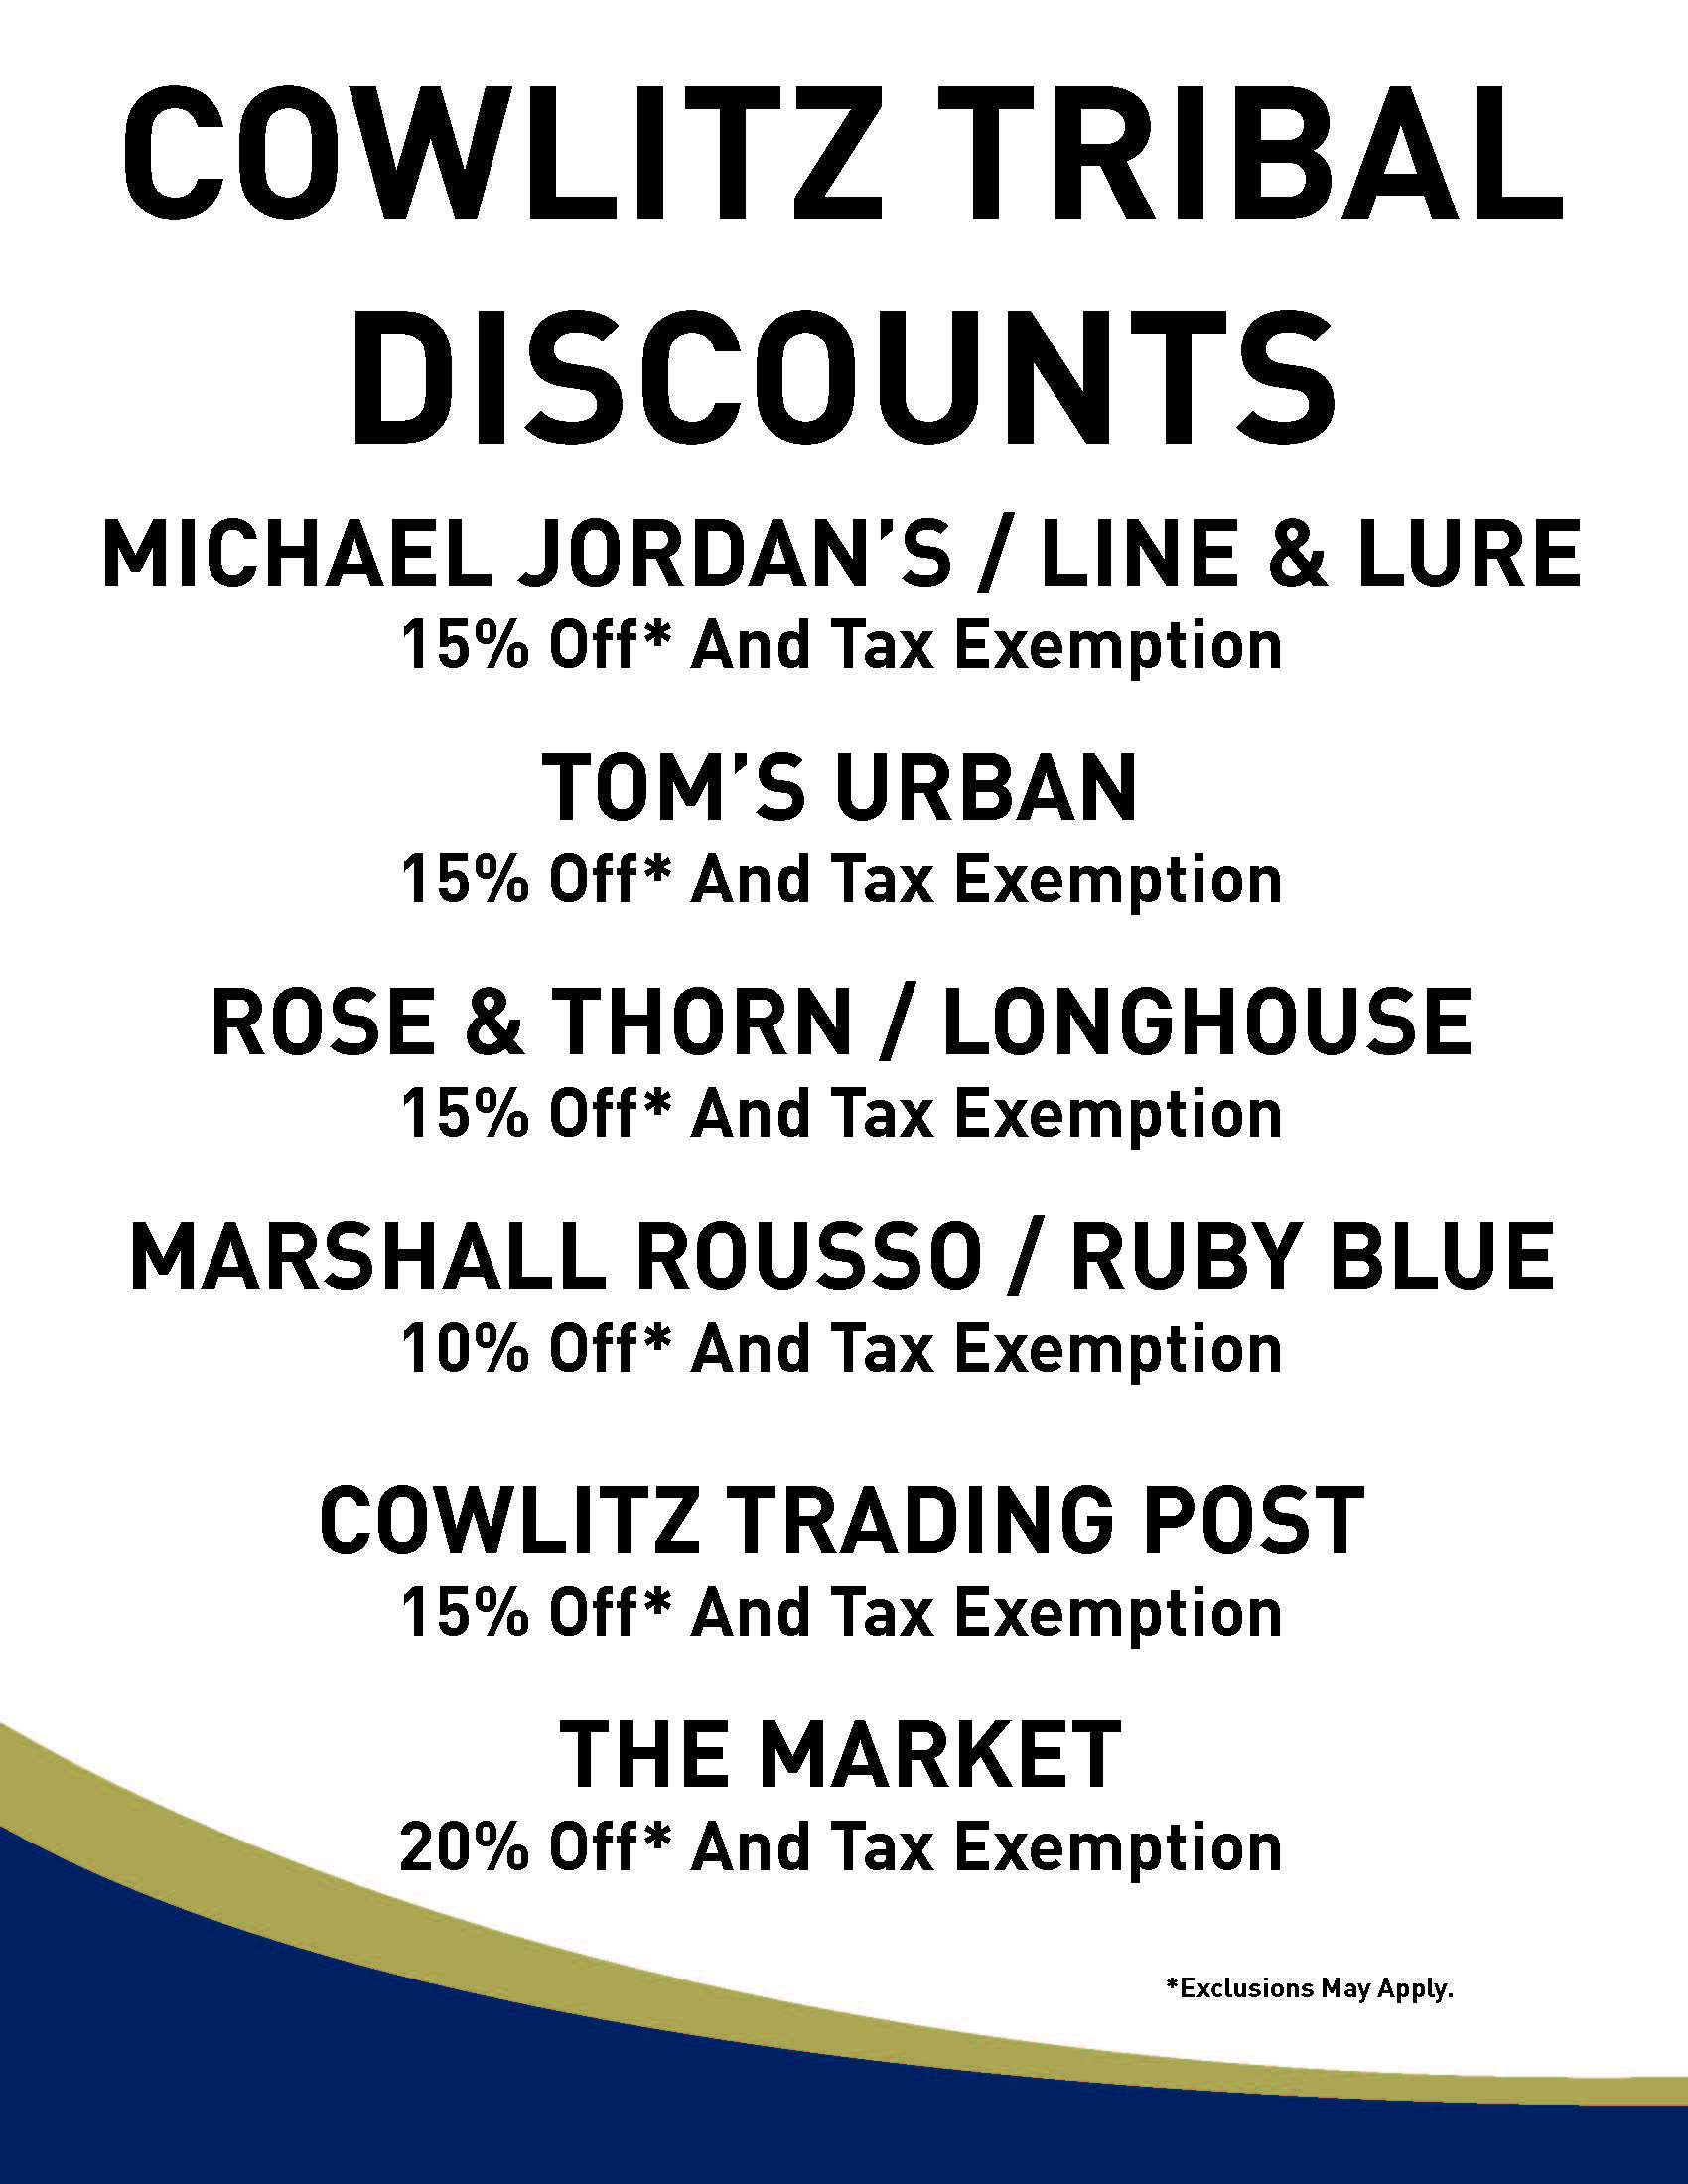 Cowlitz Tribal Discounts